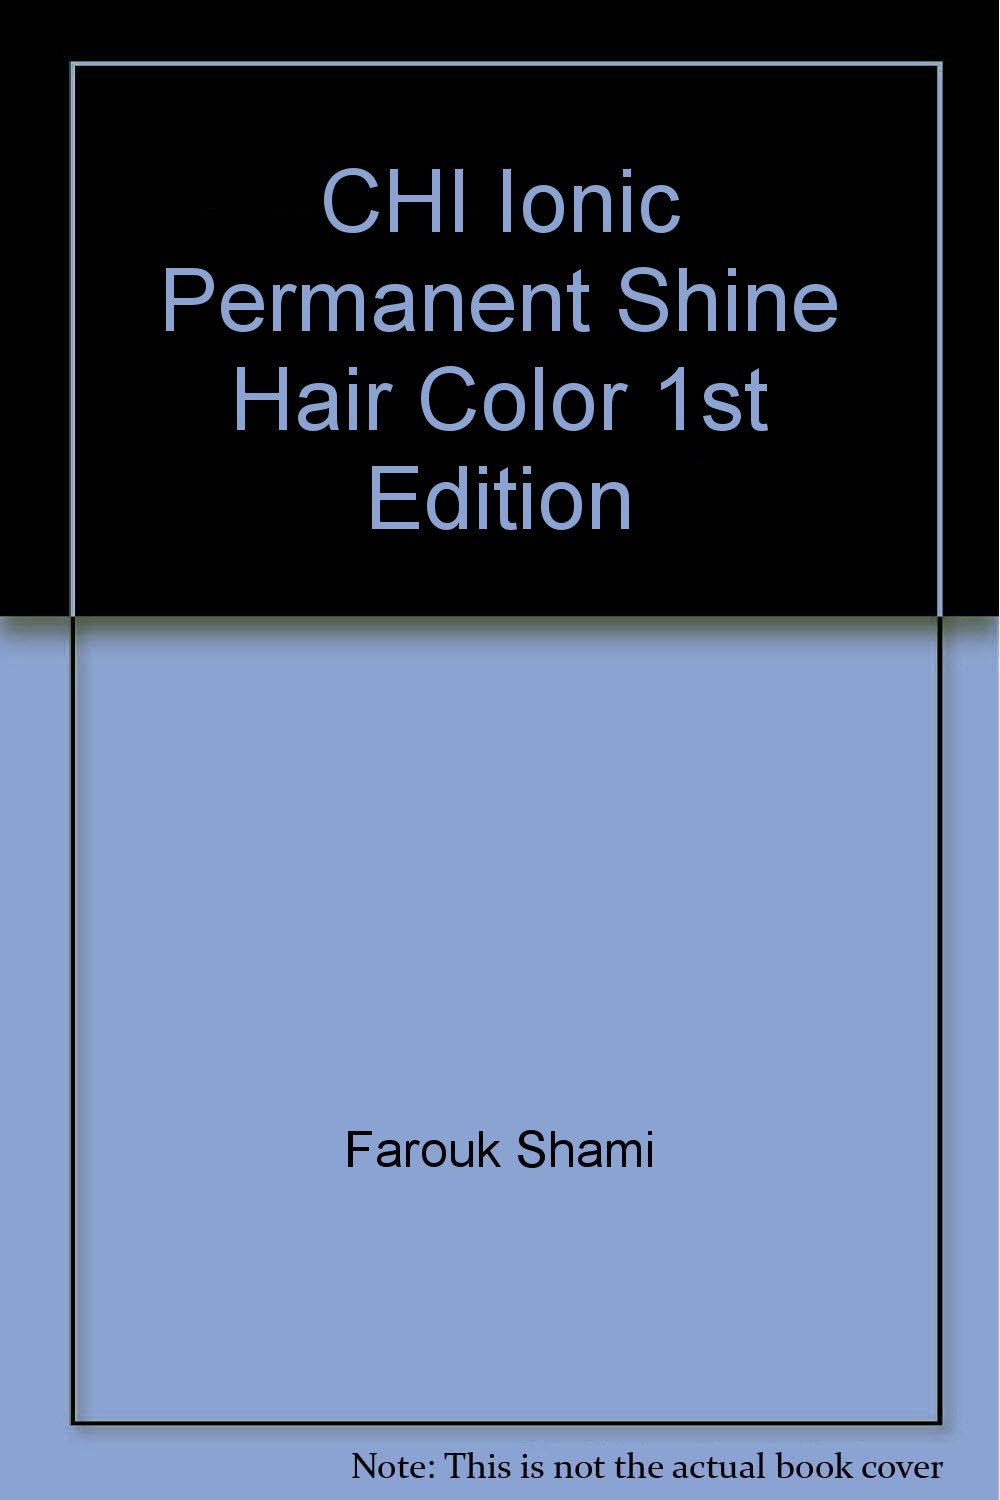 Chi ionic permanent shine hair color 1st edition farouk shami chi ionic permanent shine hair color 1st edition farouk shami amazon books geenschuldenfo Images